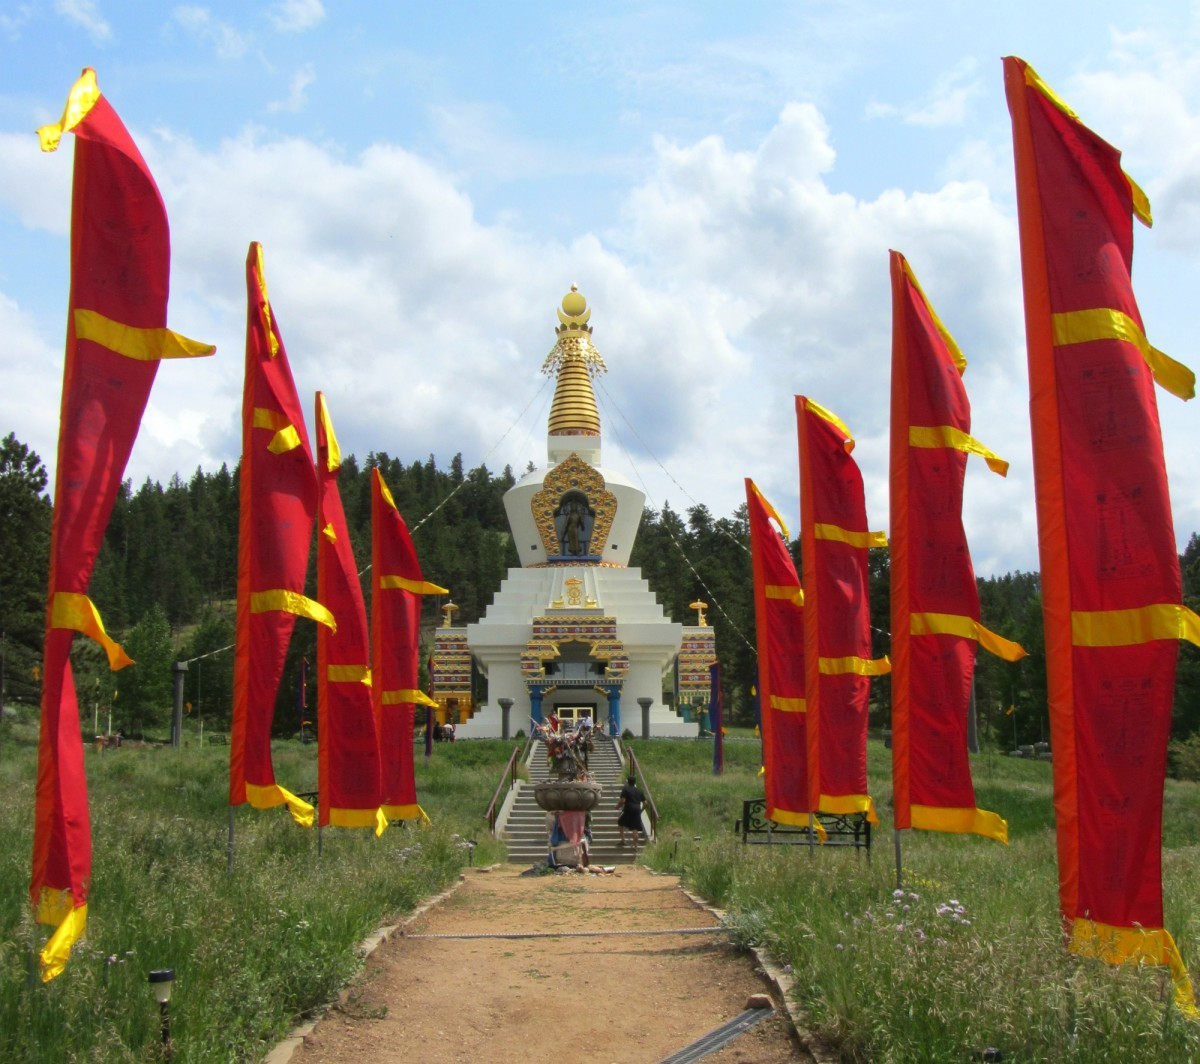 The Great Stupa of Dharmakaya in Colorado